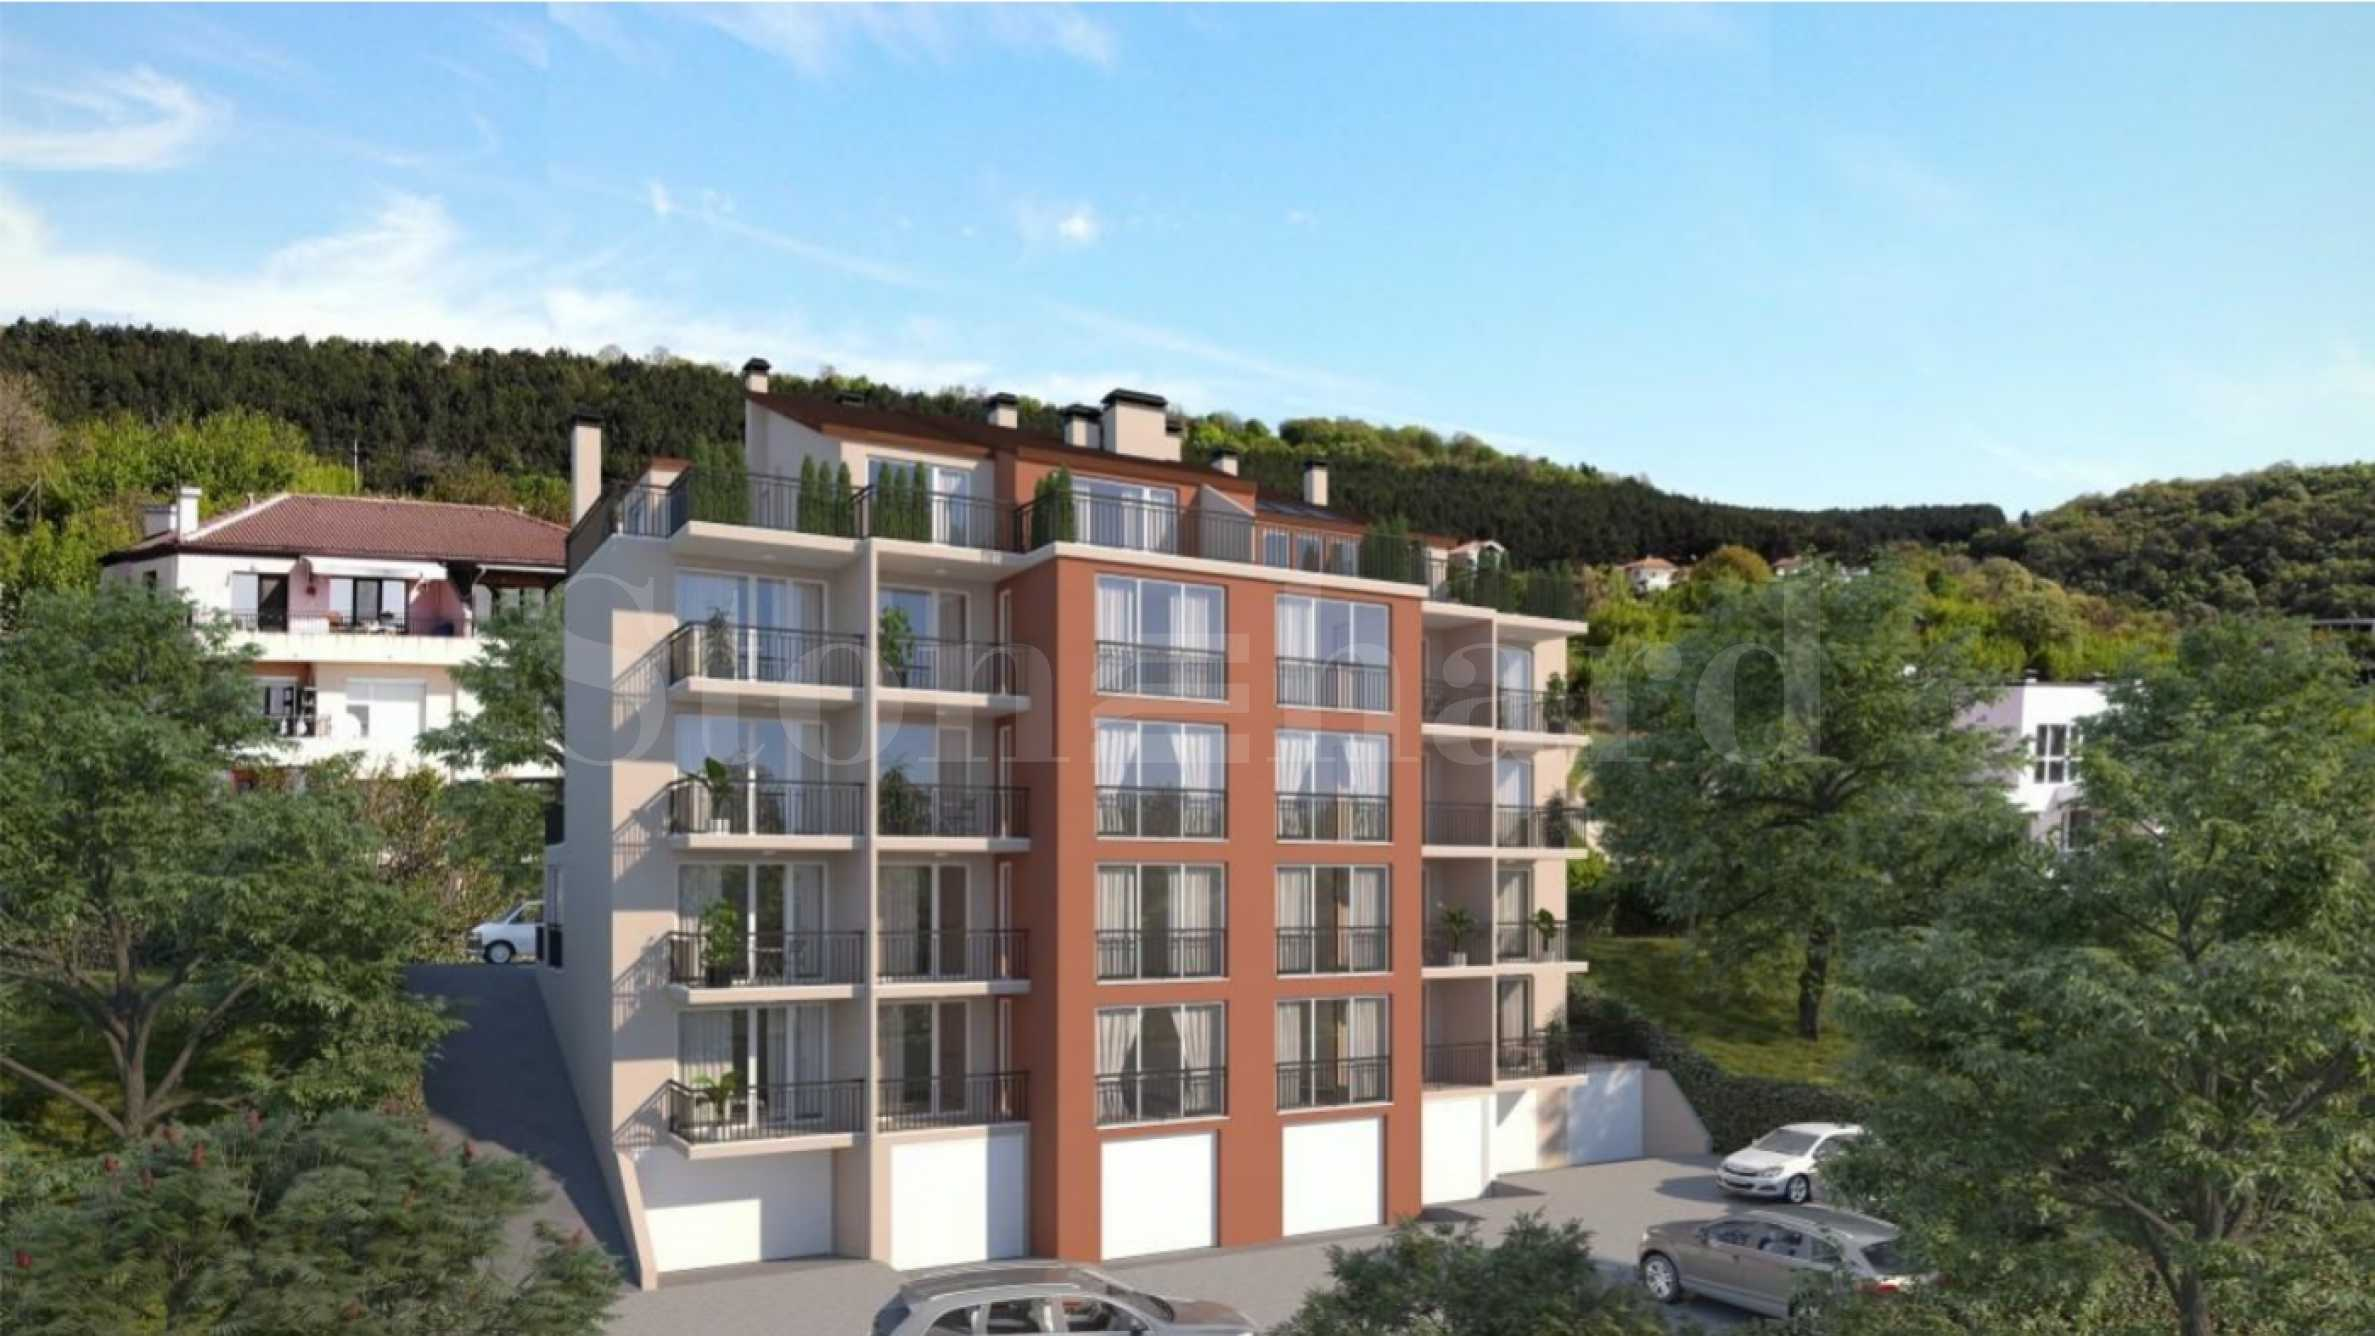 Apartments with sea views in a new building in Varna1 - Stonehard